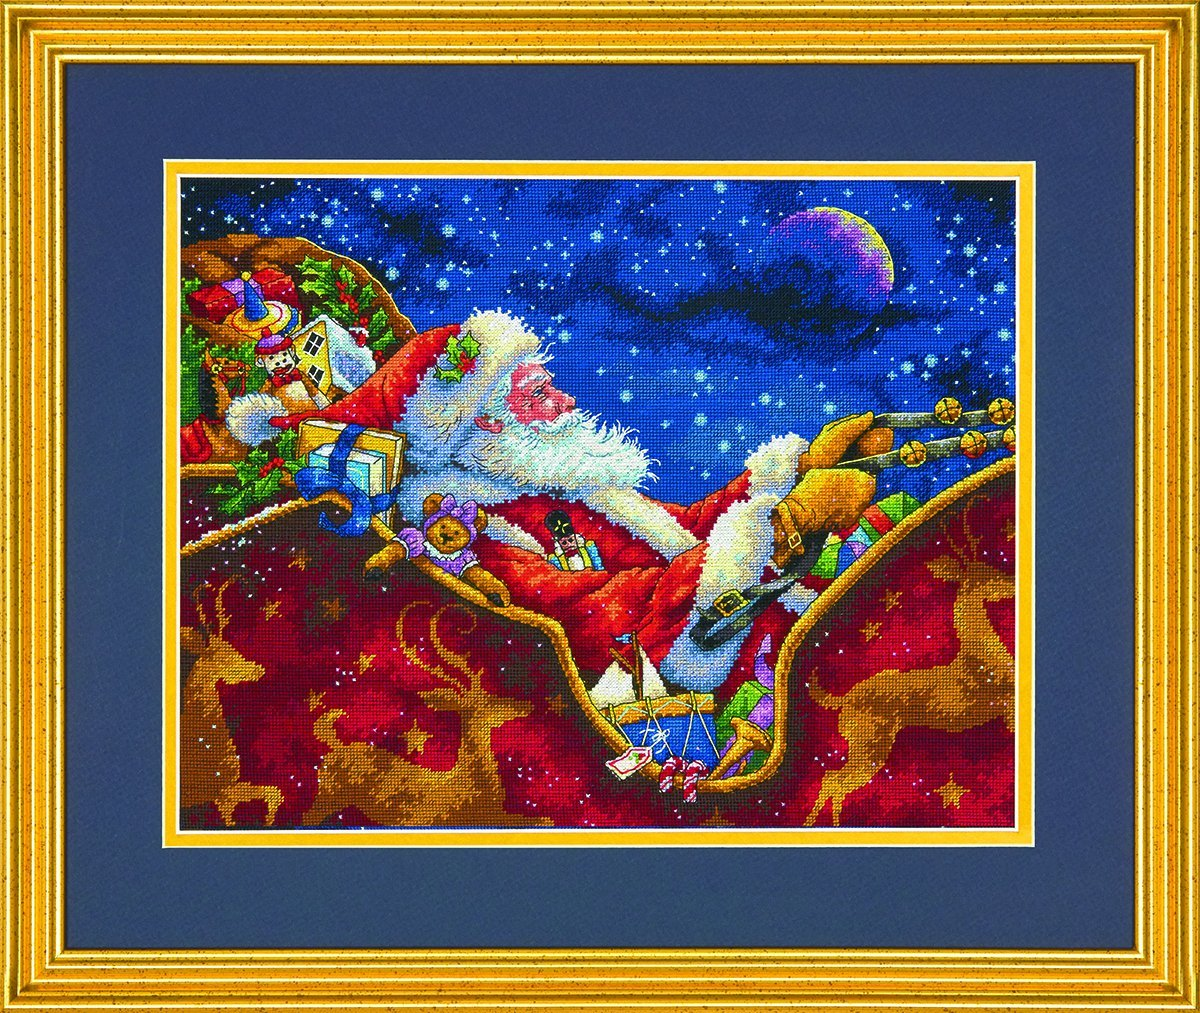 Dimensions Crafts 70-08934 Needlecraft Santa's Midnight Ride in Counted Cross Stitch IDEAL DESIGN ENTERPRISES CO. LTD